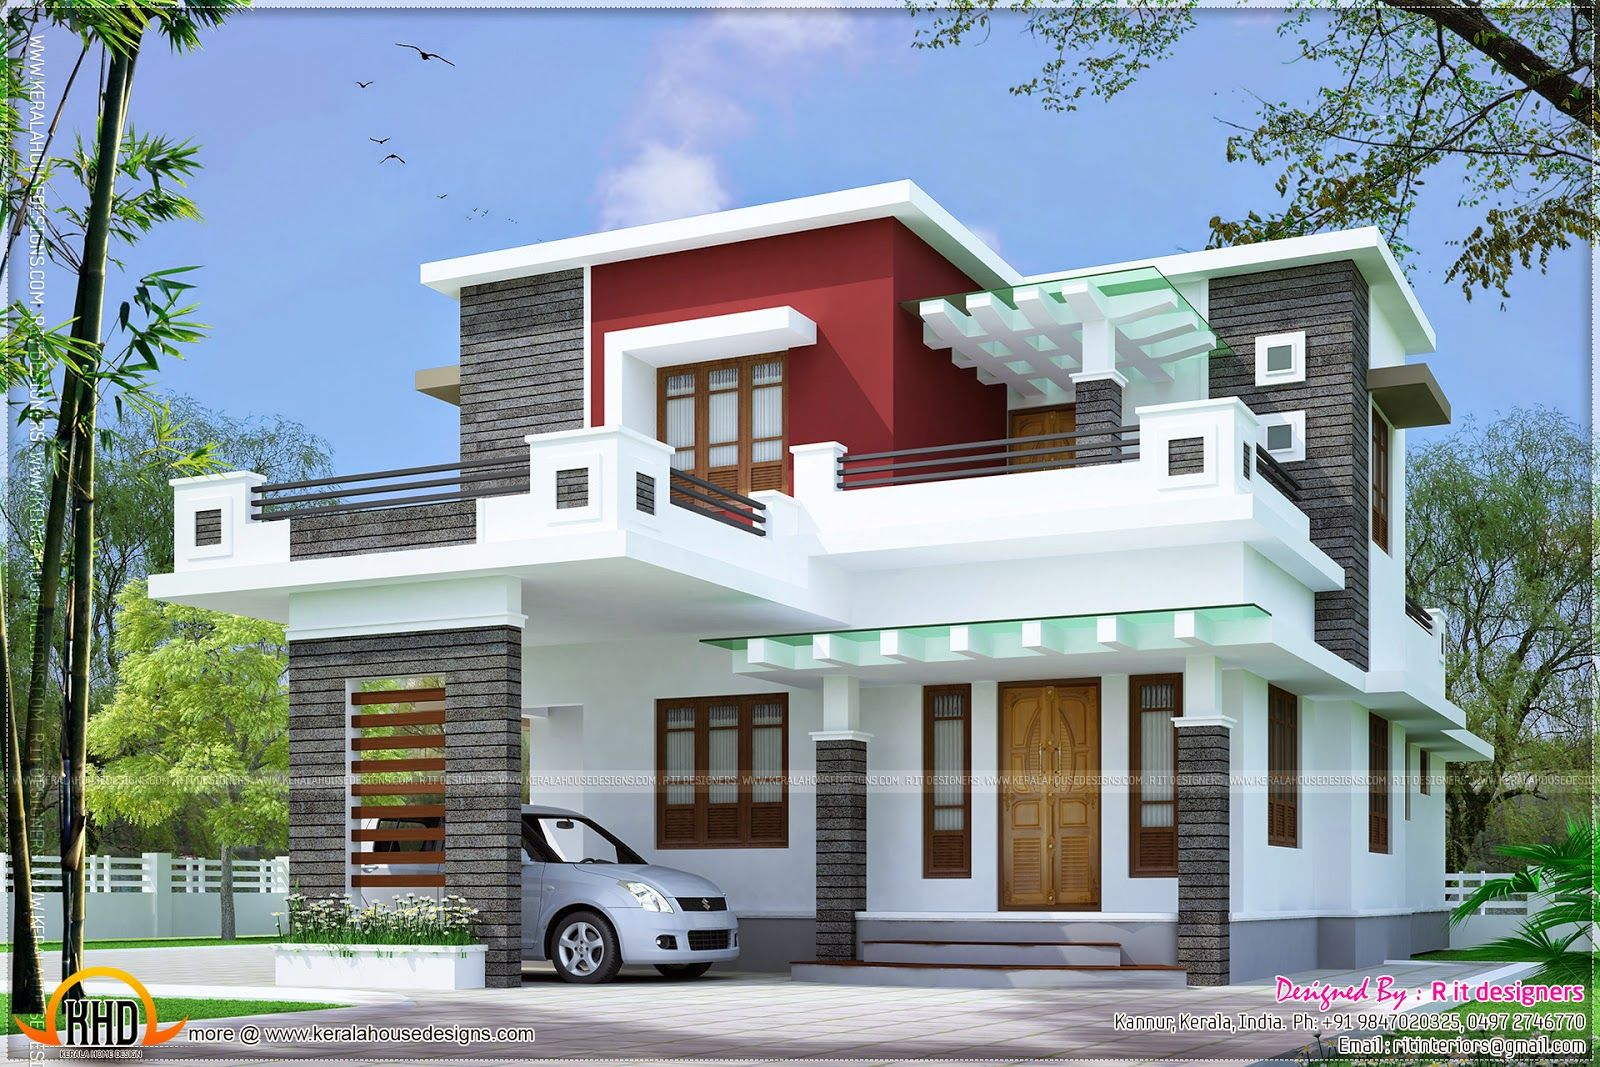 Free double storey house plans flat roof google search for Kerala home design flat roof elevation